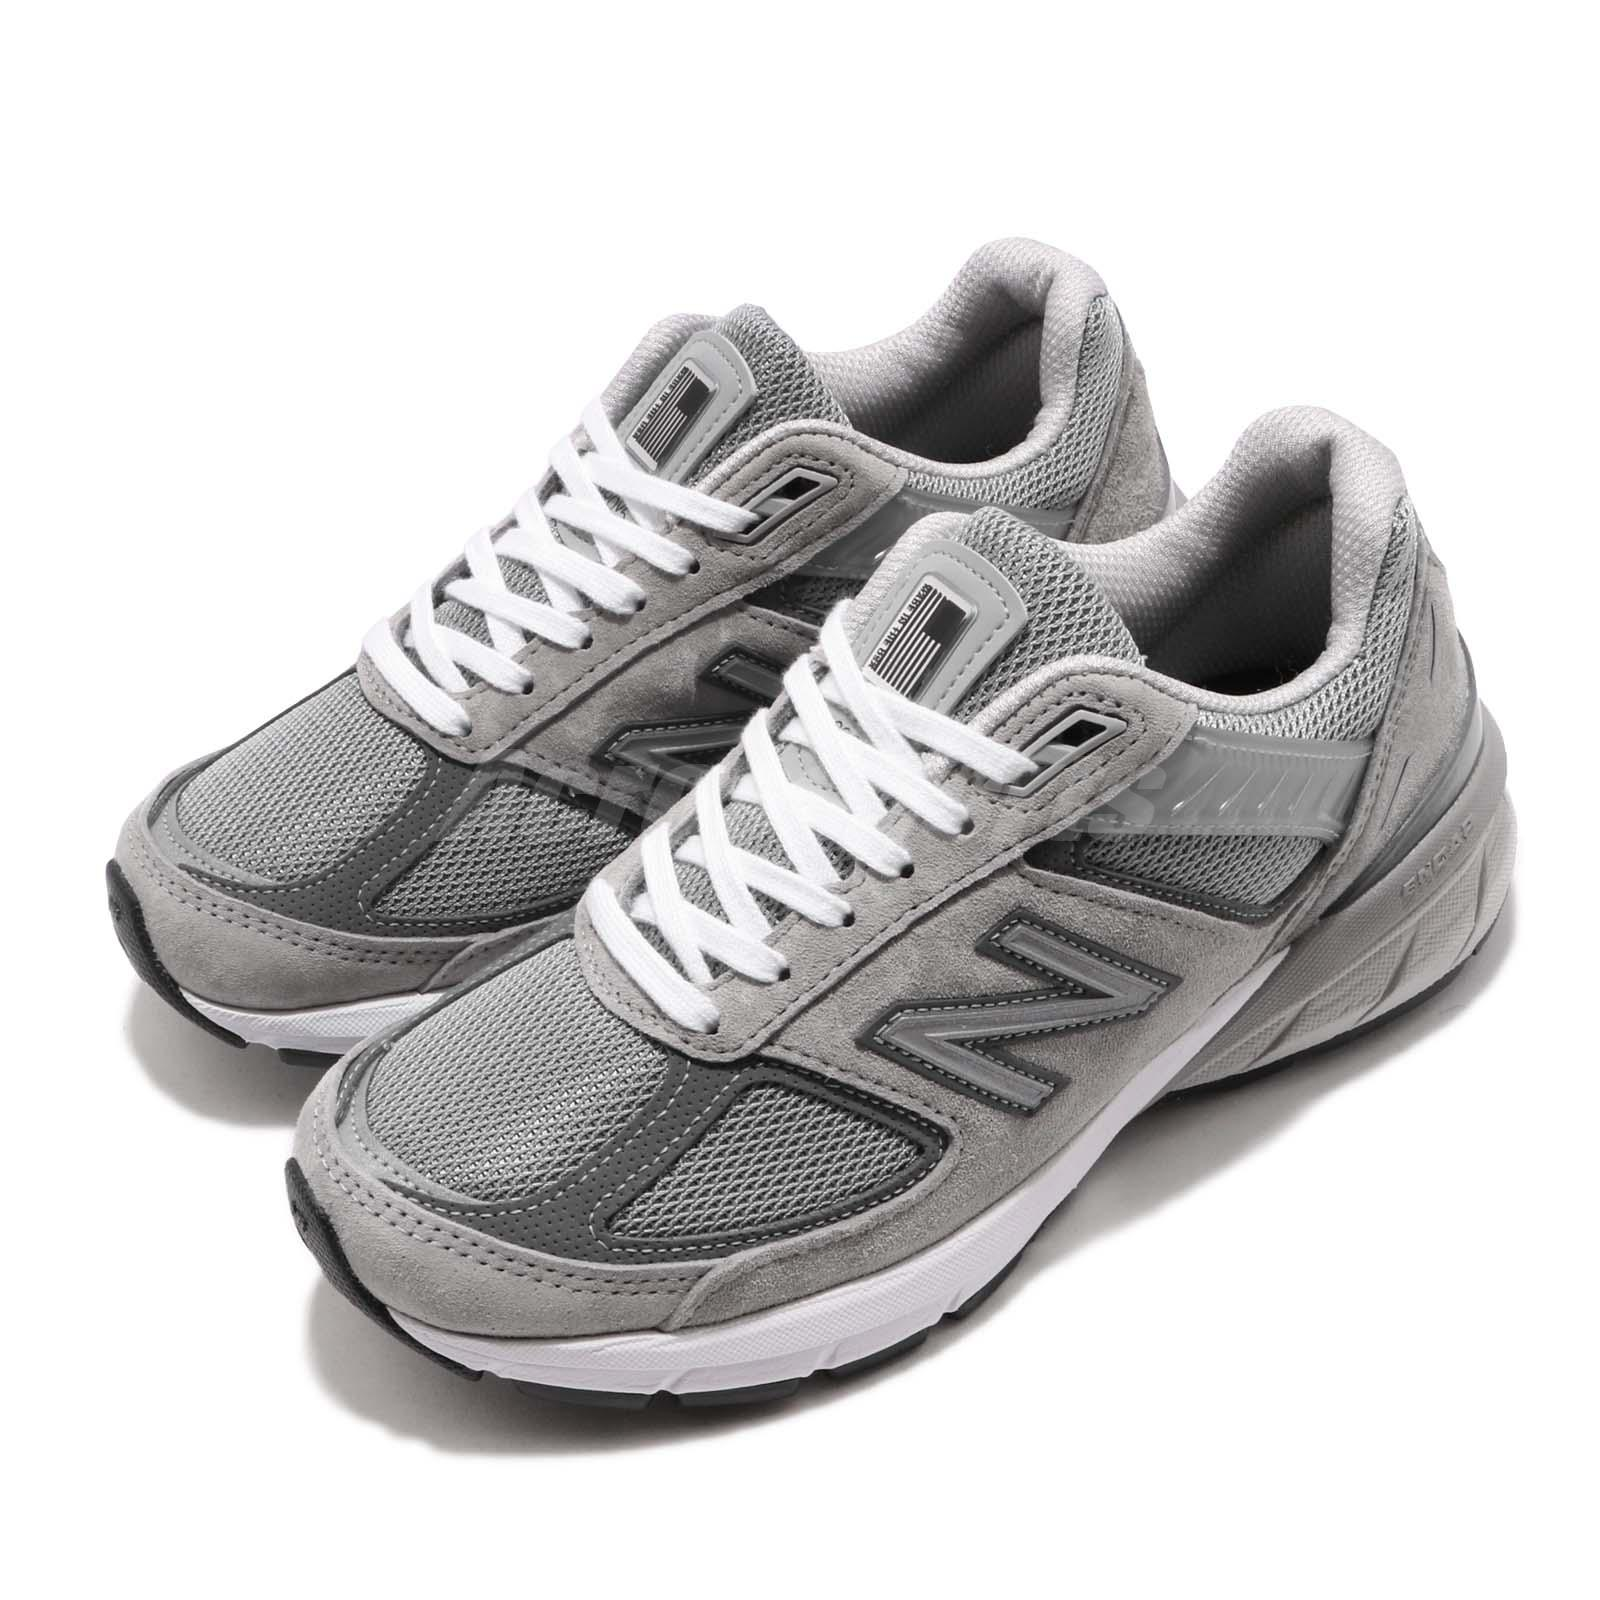 newest e5daf 25438 Details about New Balance W990GL5 D Wide 990 V5 Grey Womens Running Shoes  W990GL5D